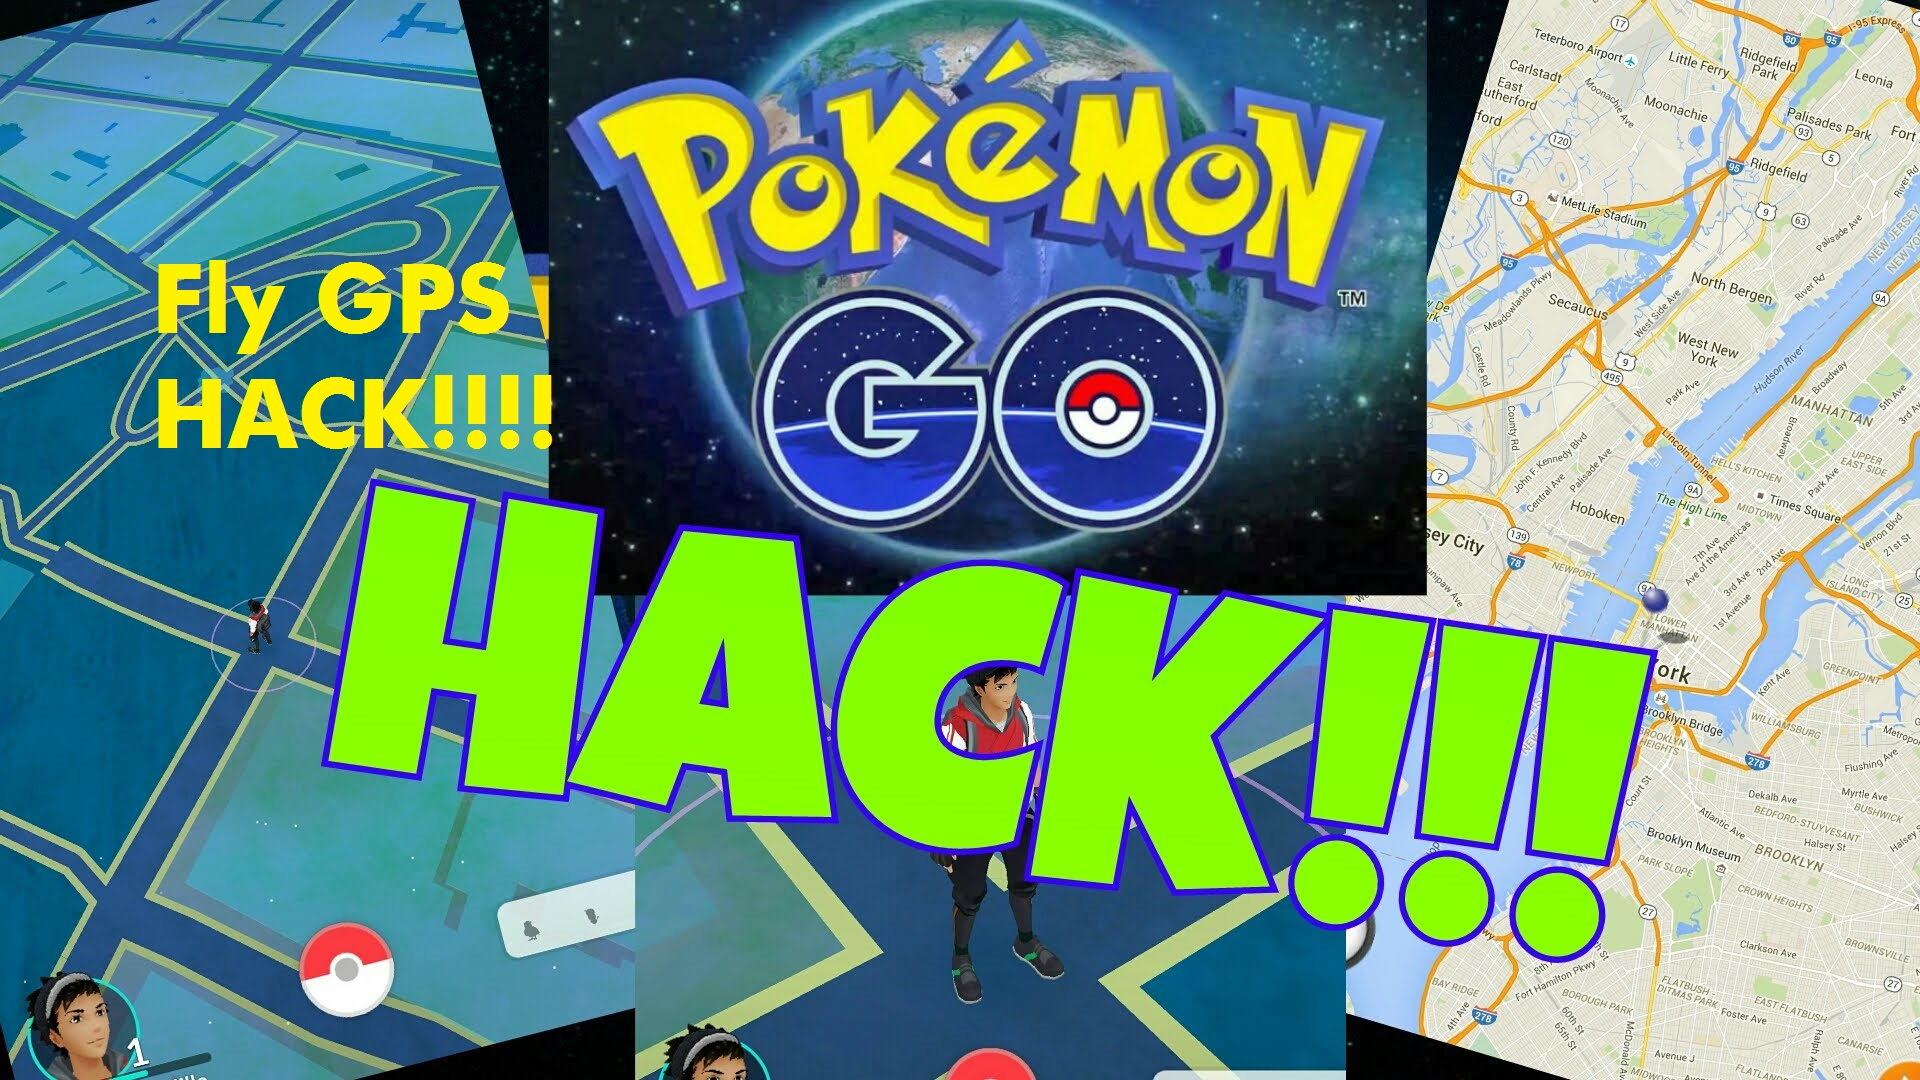 Fly GPS Apk (Fake GPS) Download For Pokemon GO Location Hack